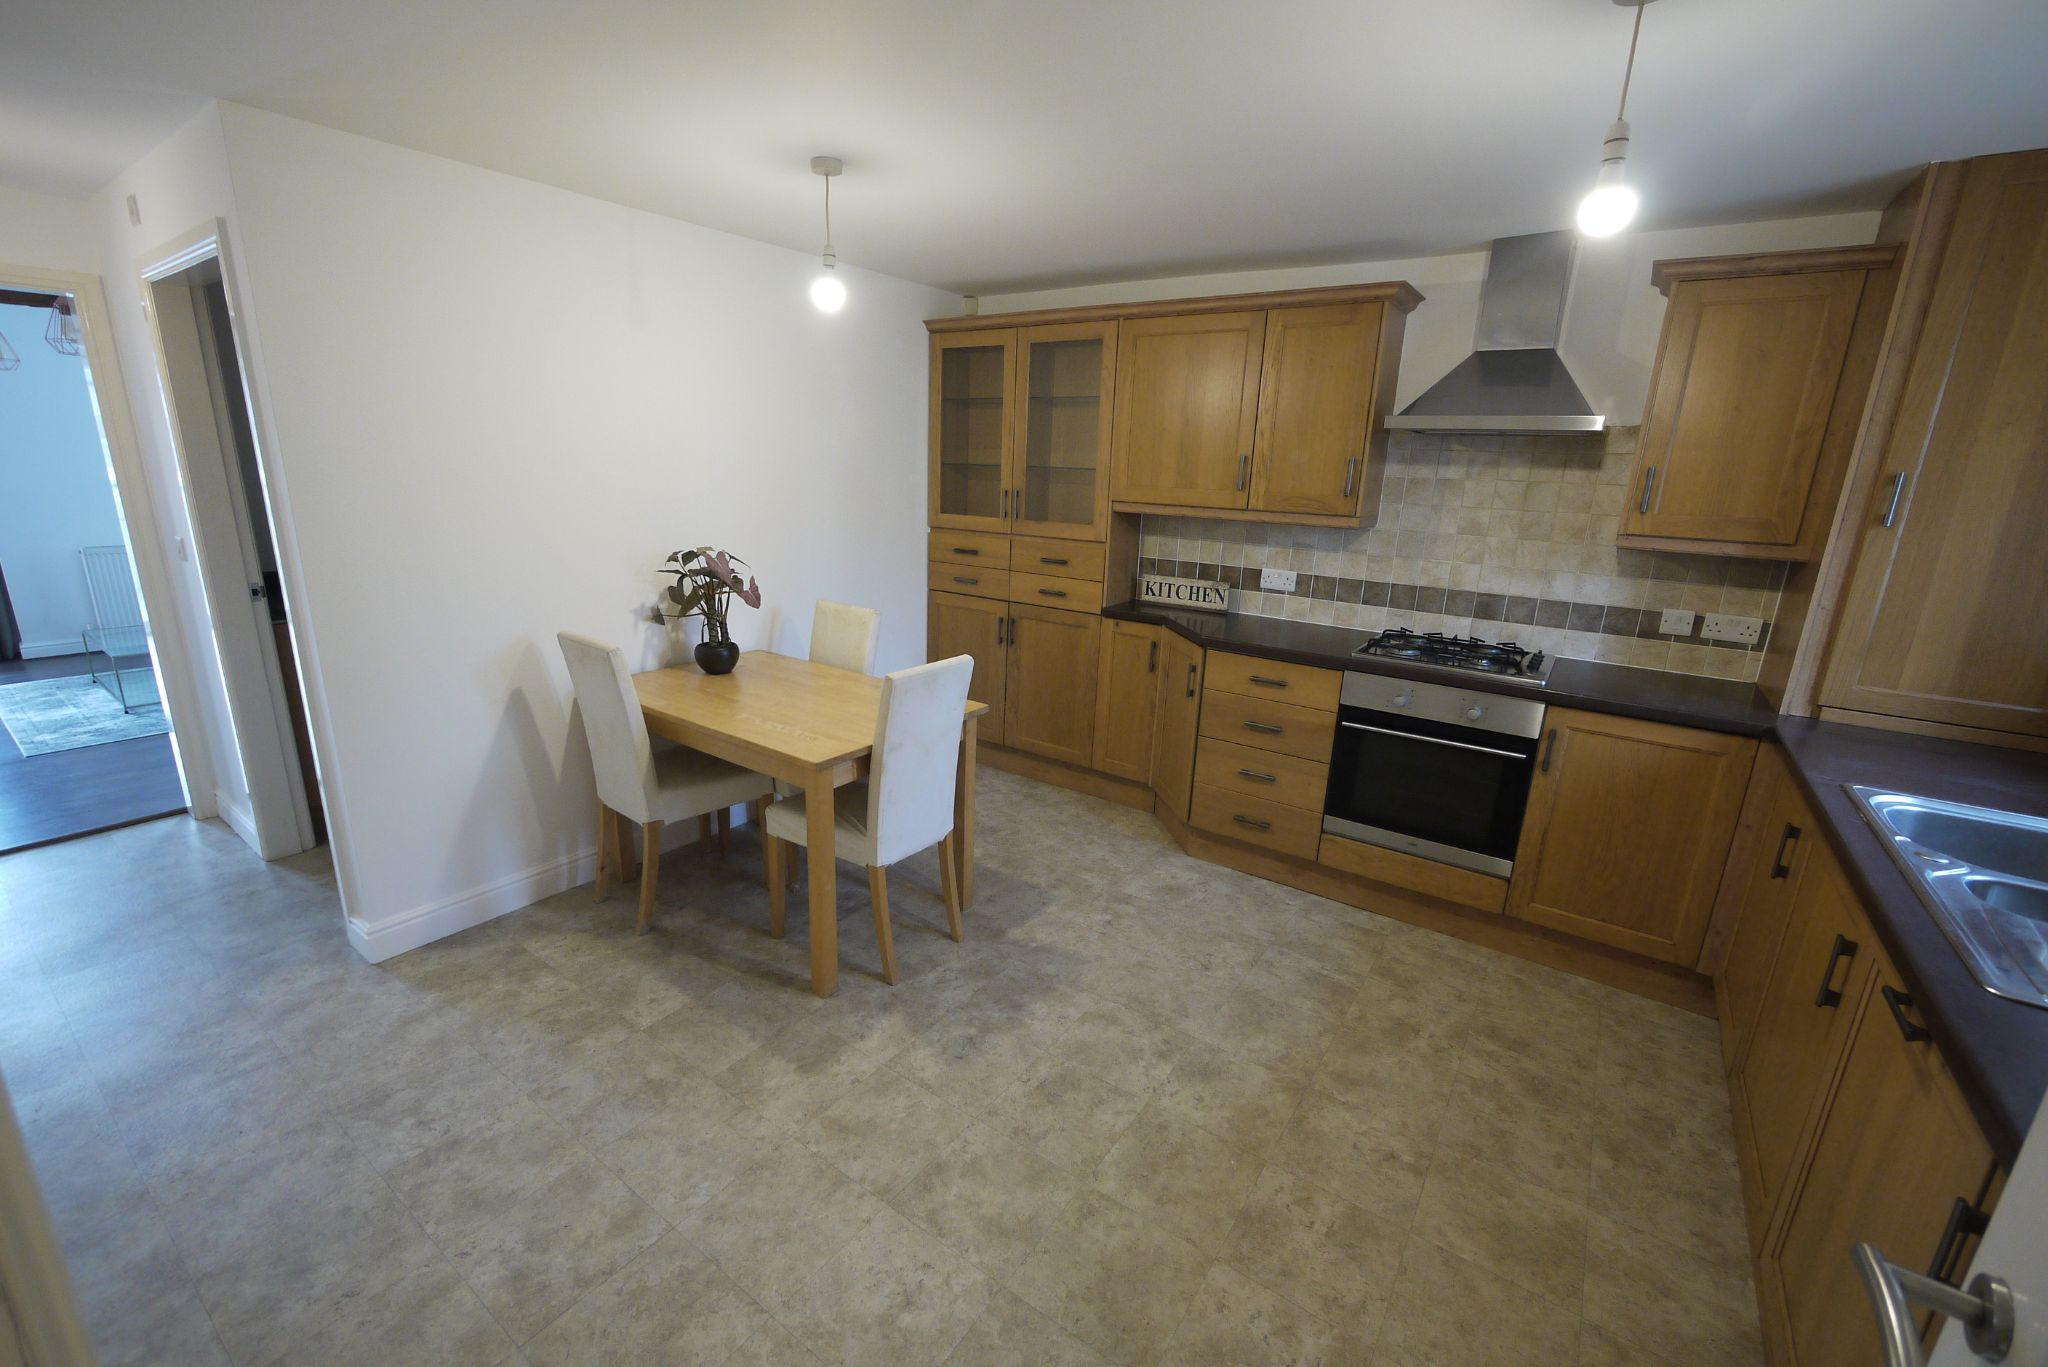 4 bedroom barn character property For Sale in Brighouse - Photograph 4.